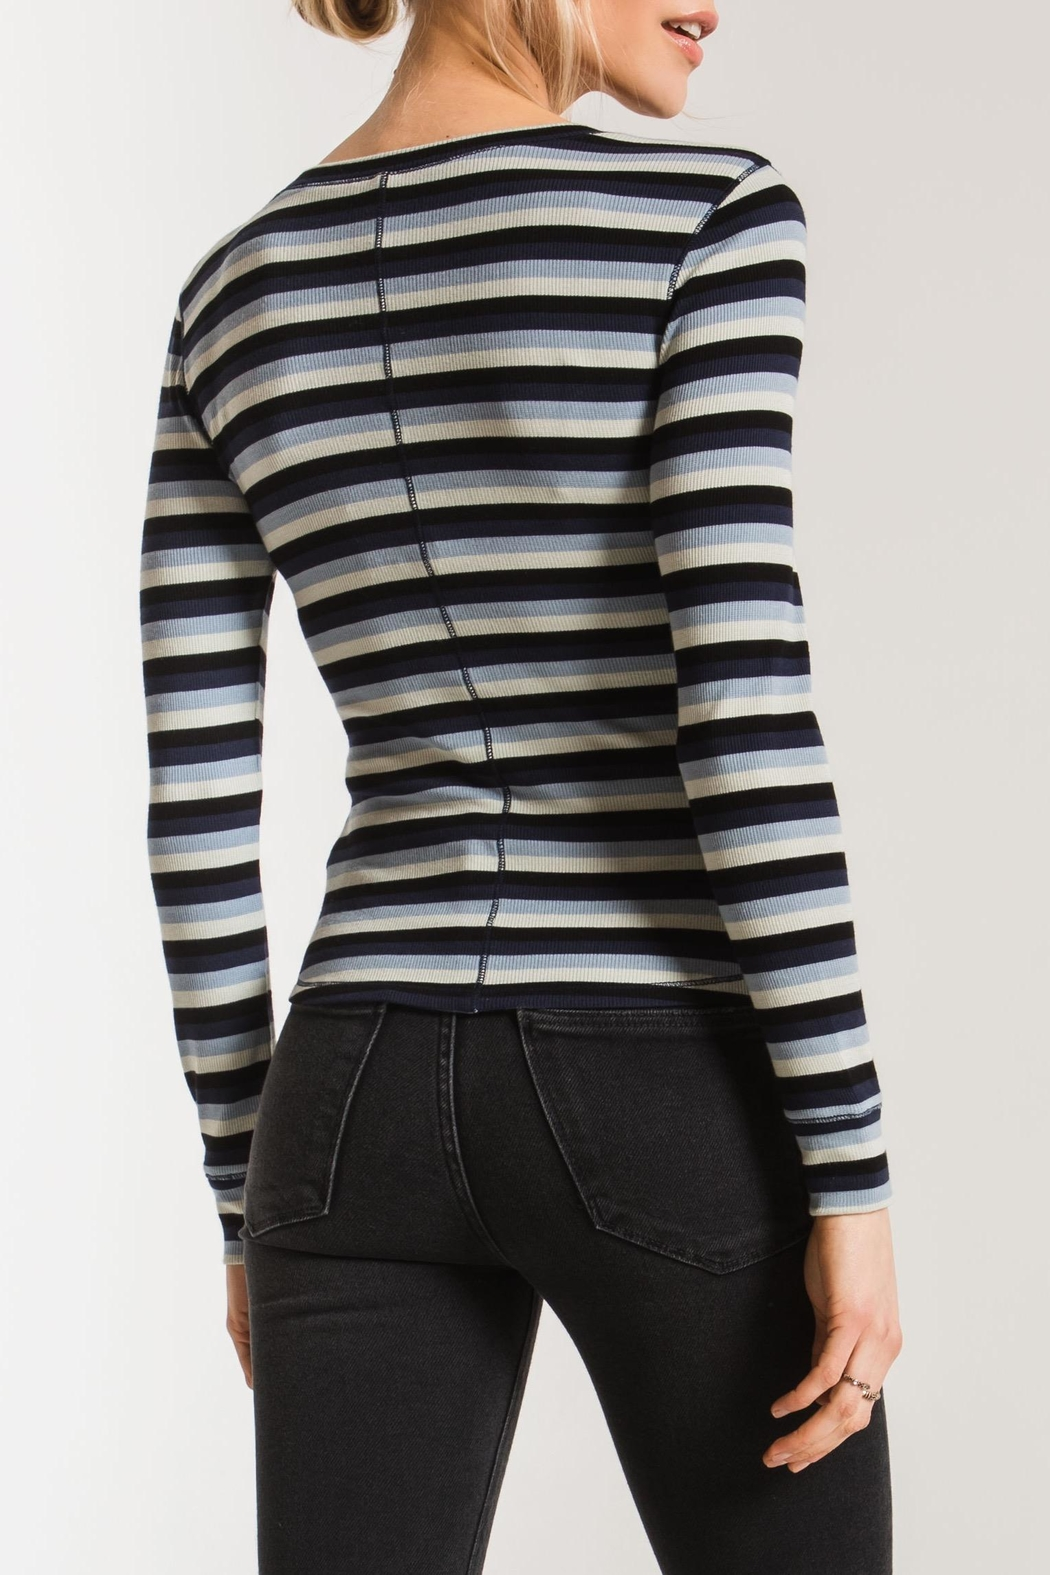 z supply Pamina Striped Tee - Front Full Image